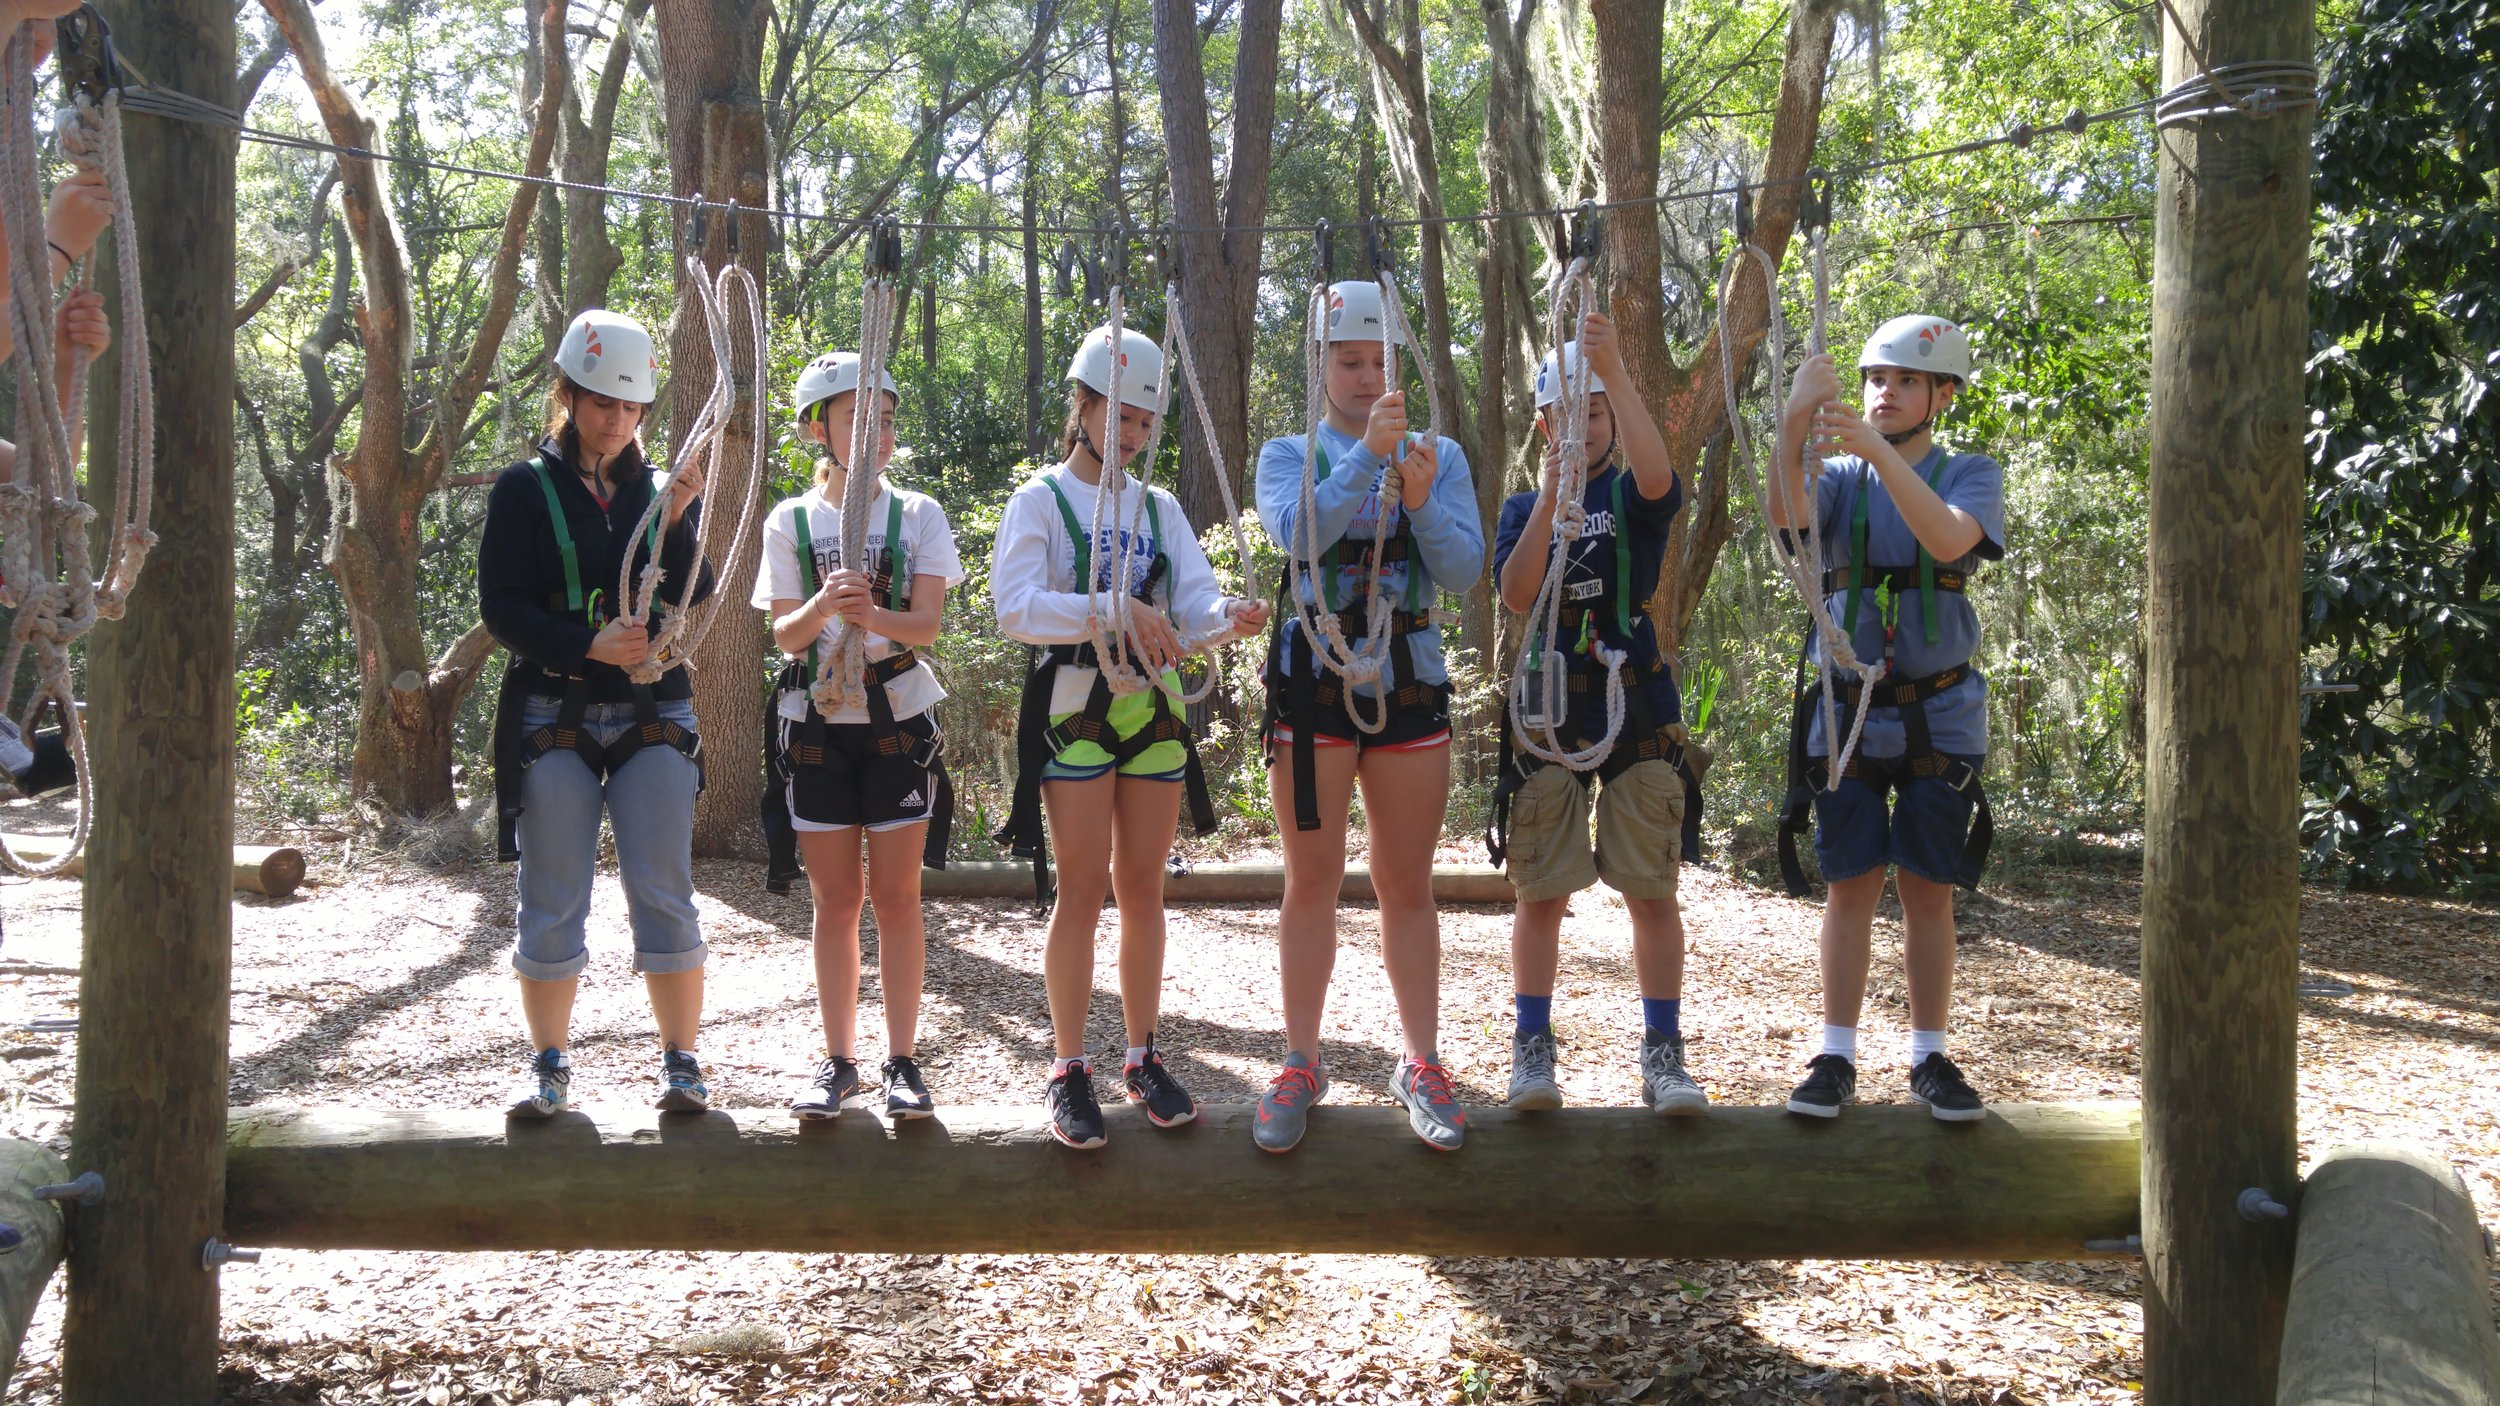 Training for High Ropes/Challenge Course at the retreat center.